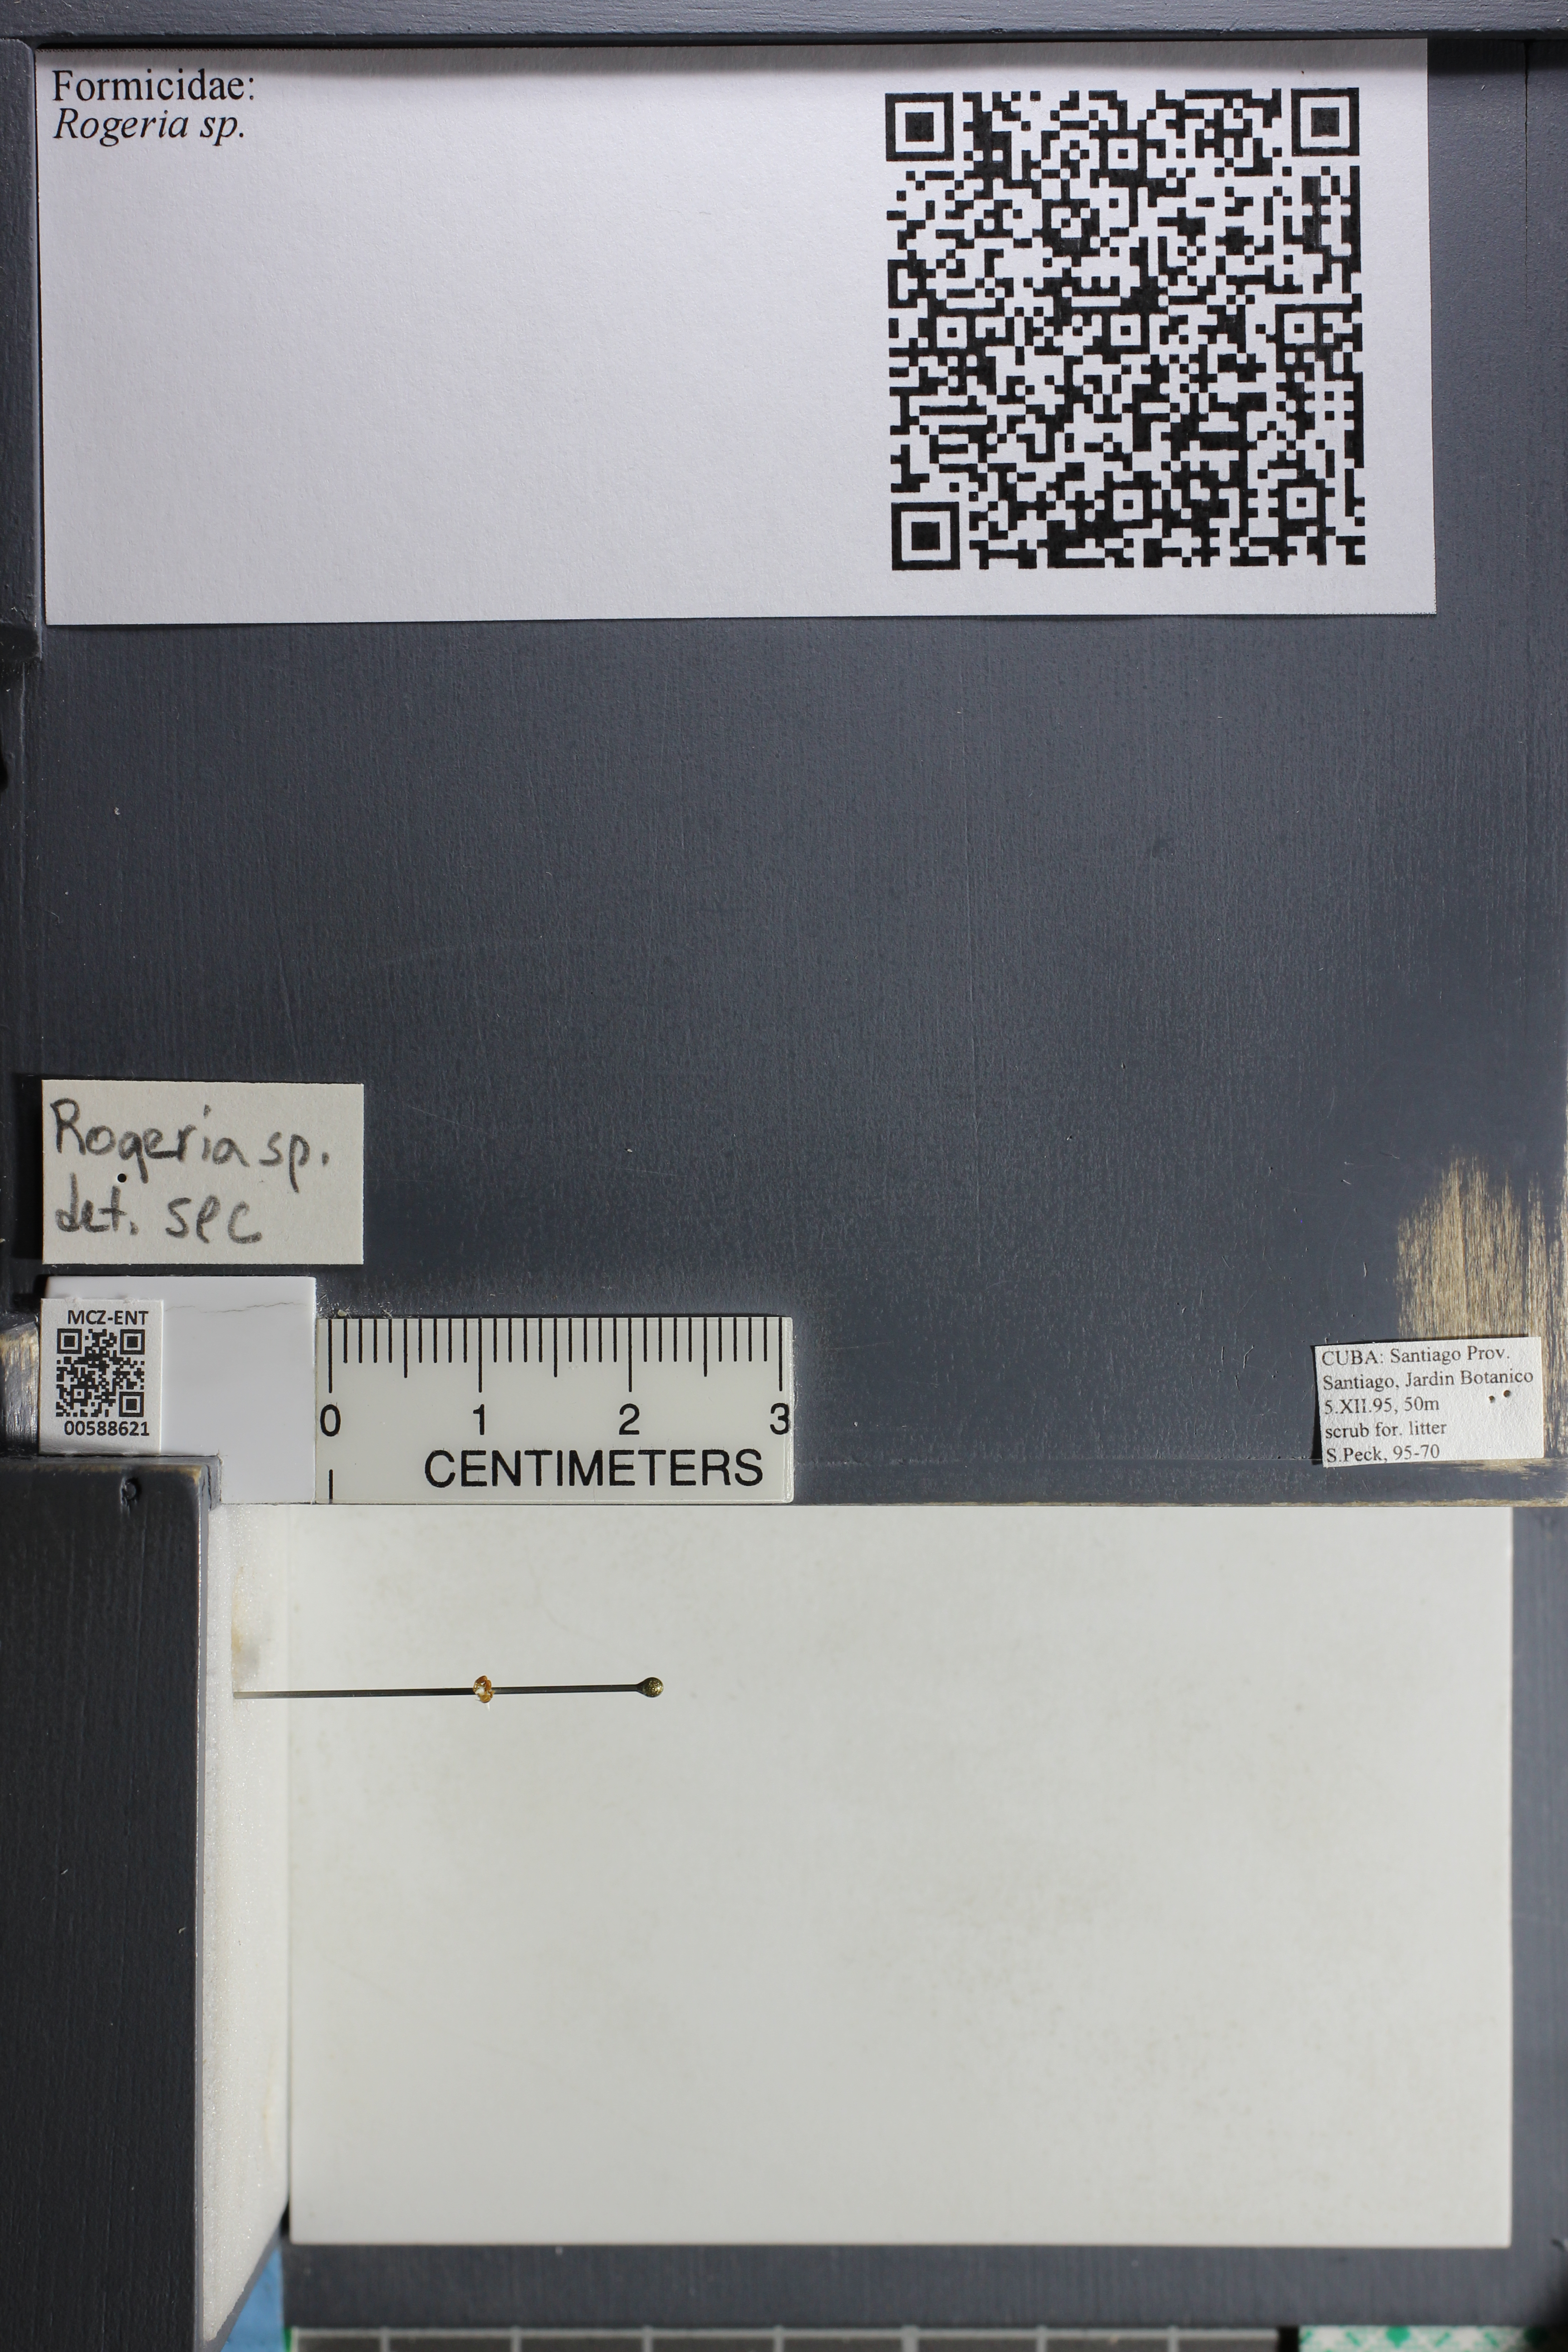 Media of type image, shows cataloged_item. MCZ:Ent:588621 Identified as Rogeria sp..